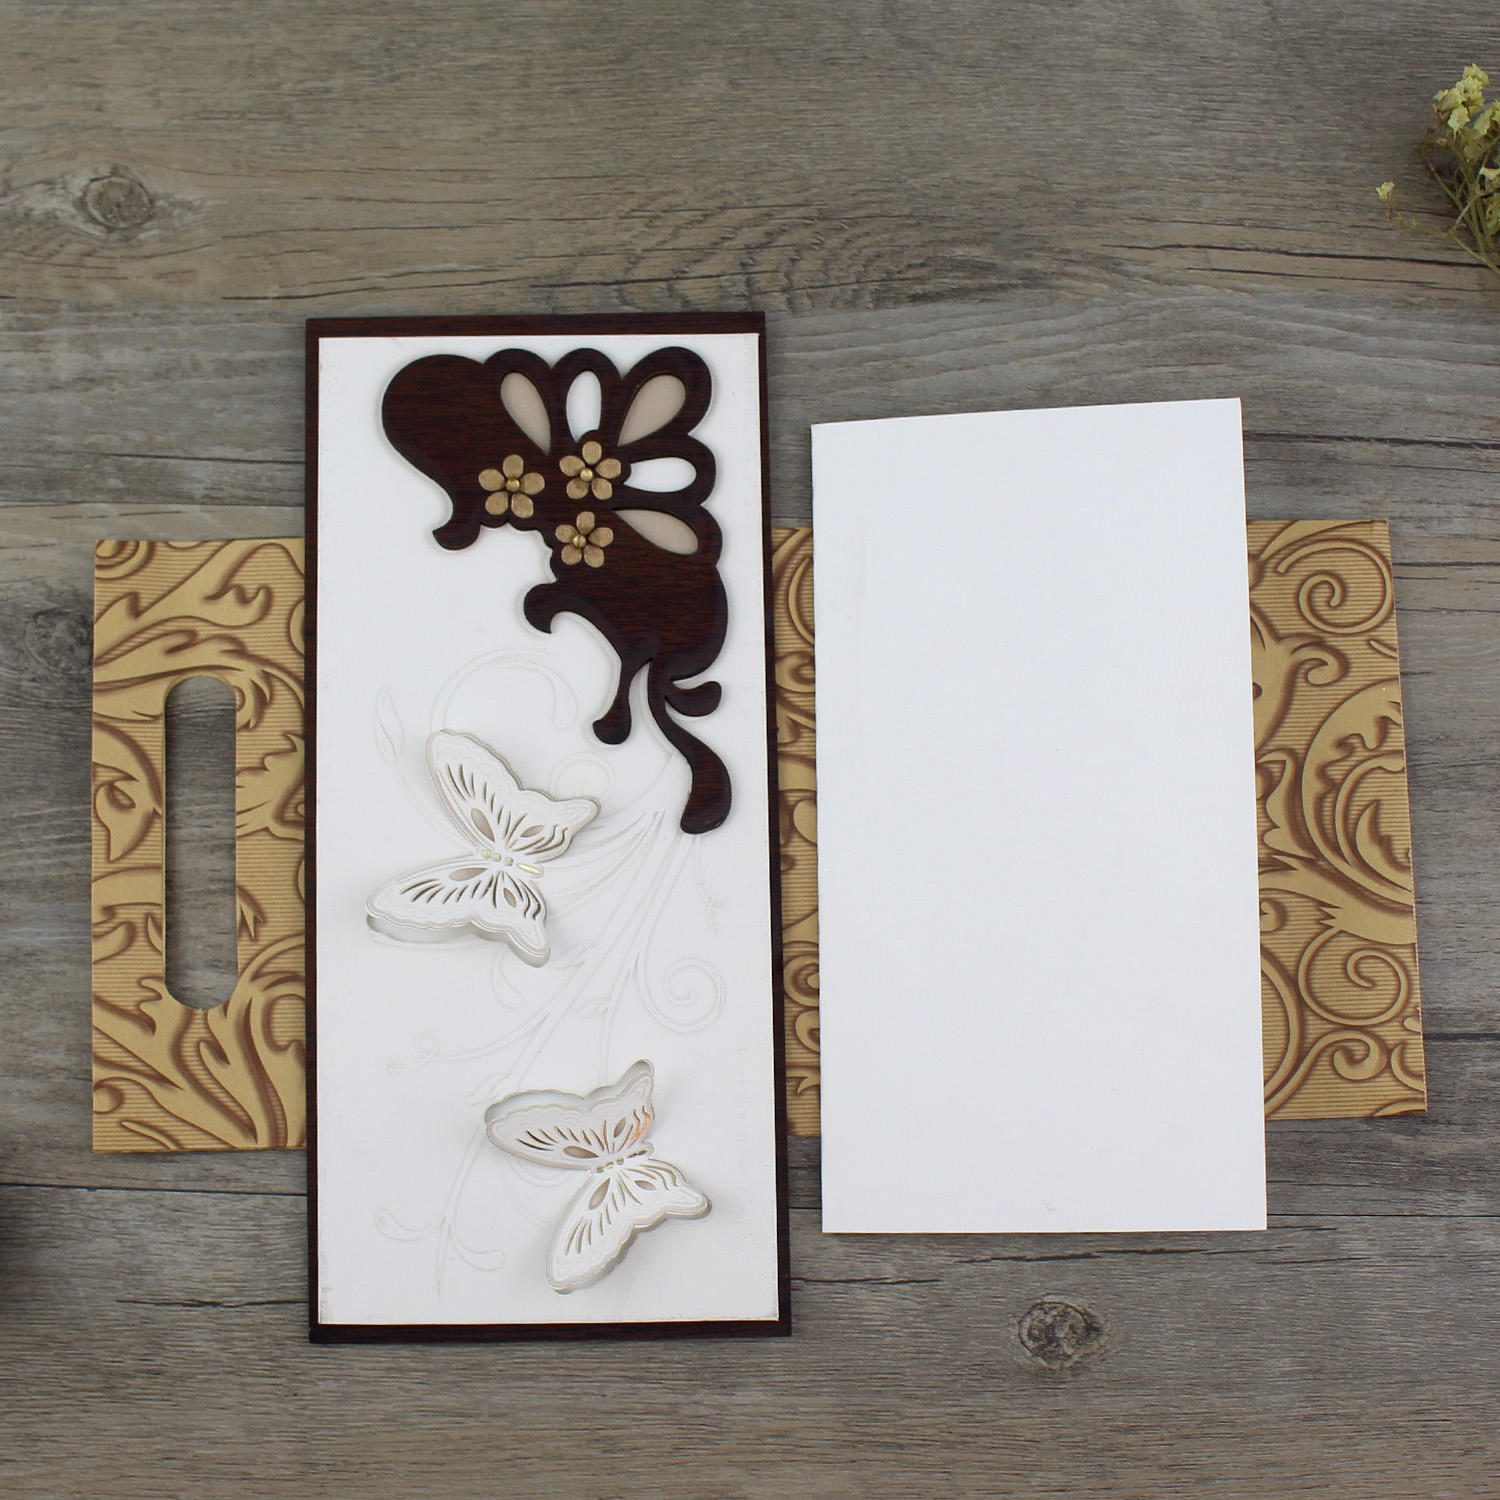 Chinese Romantic Love Story Customized 3d Butterflies Wedding Invitation  Cards - Buy Wedding Invitation Cards,3d Wedding Invitation Cards,Romantic Wedding  Invitation Card Product on Alibaba.com